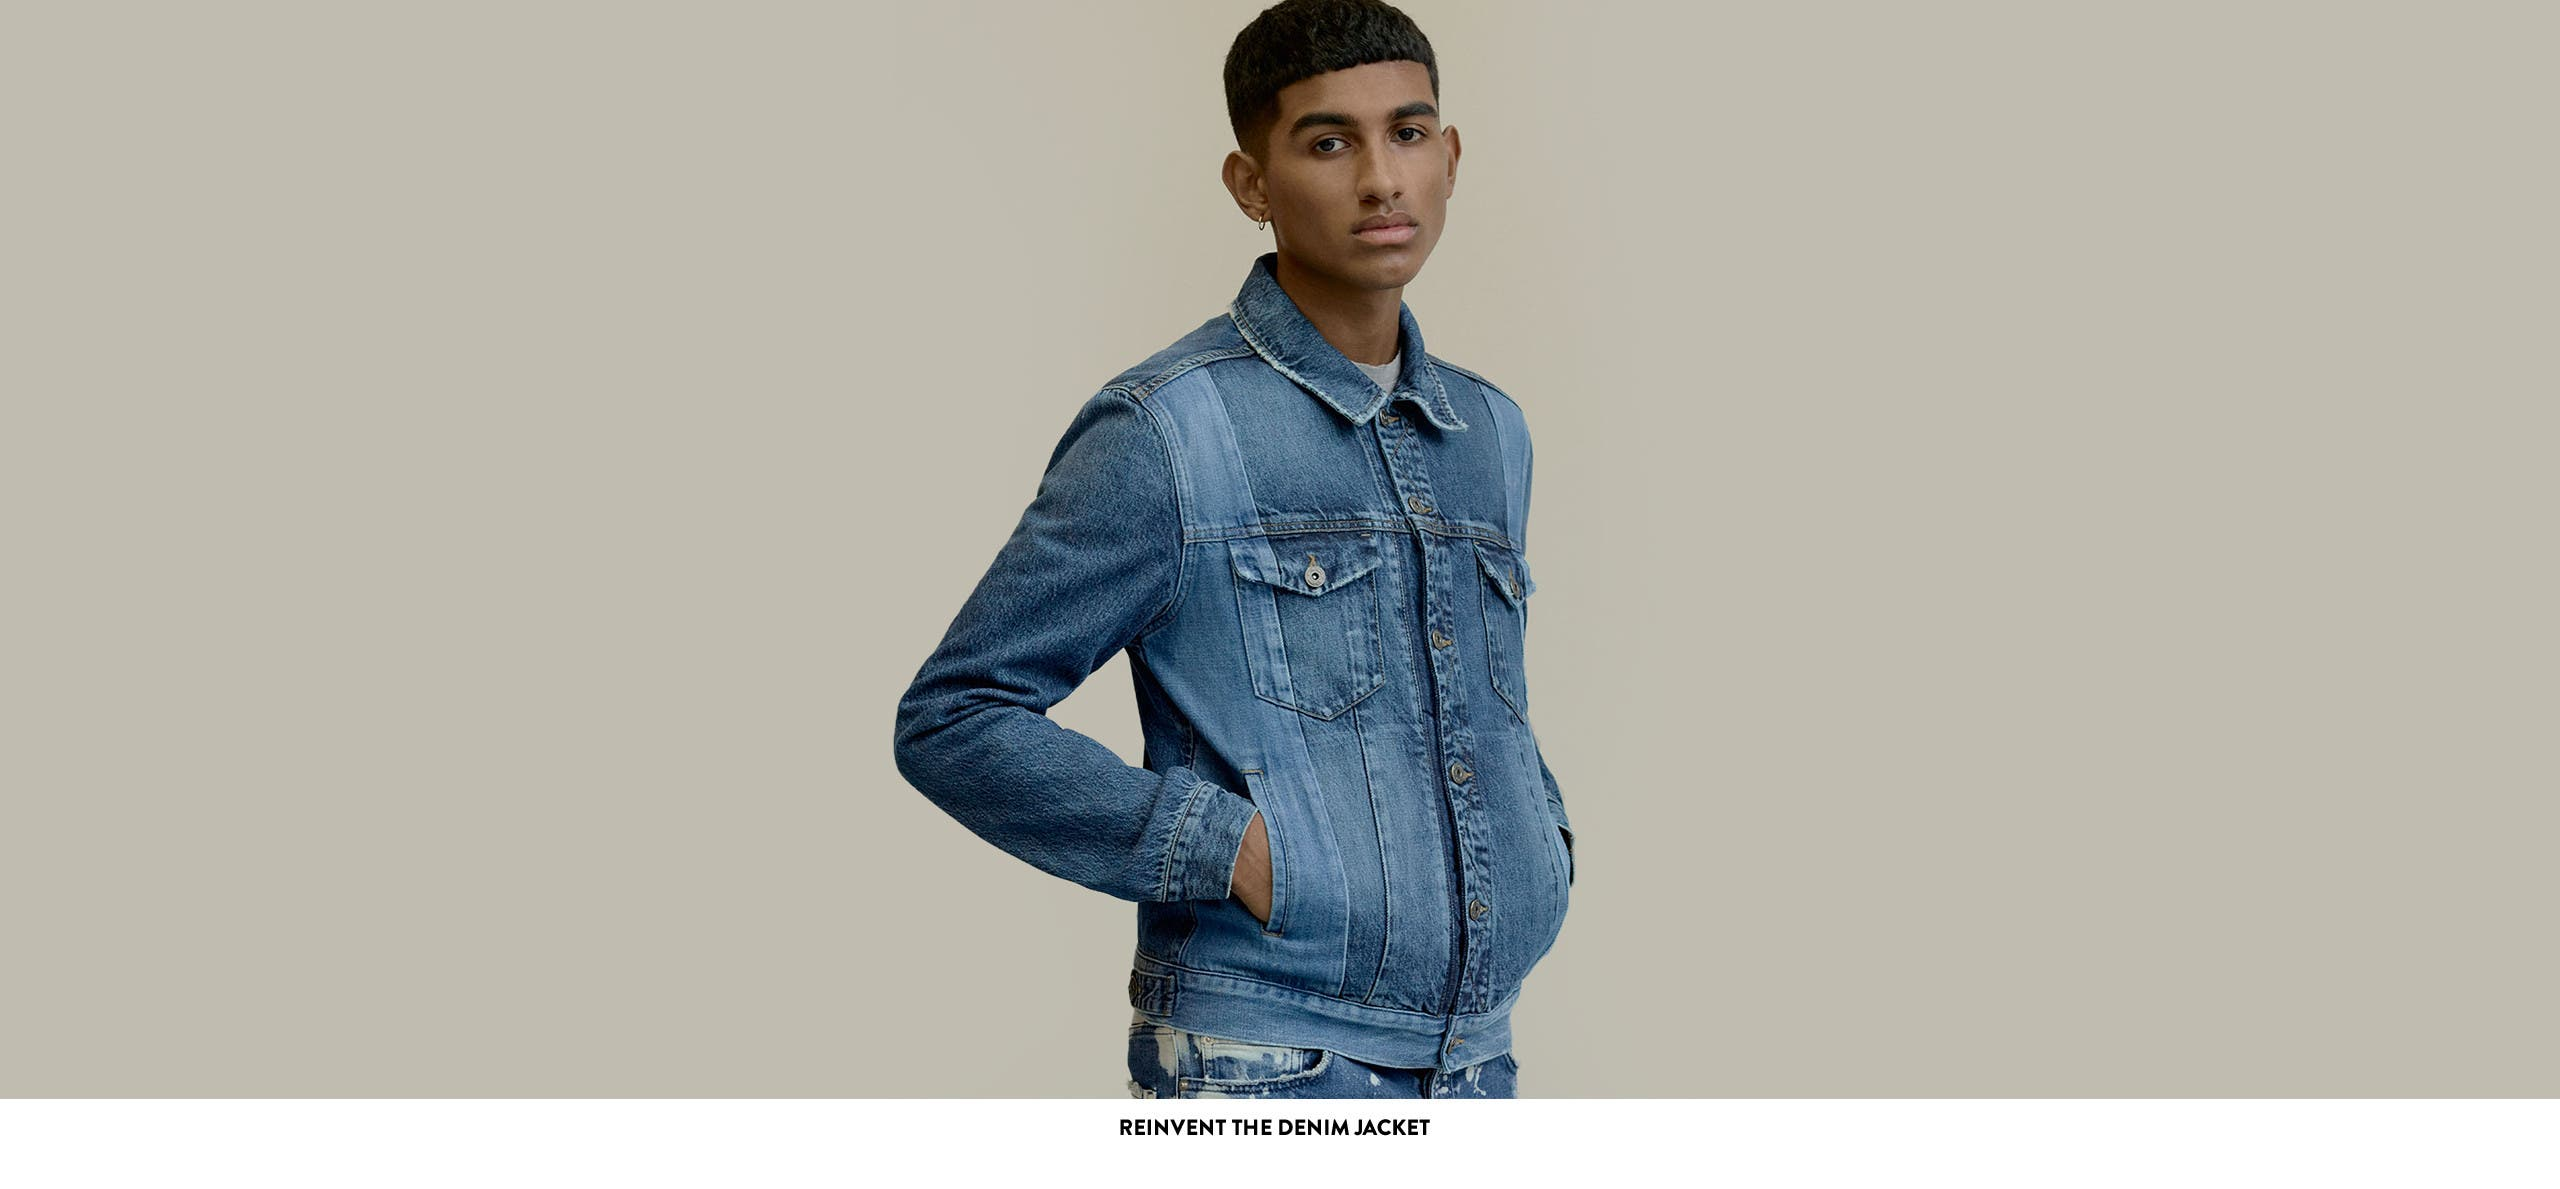 Reinvent the denim jacket.